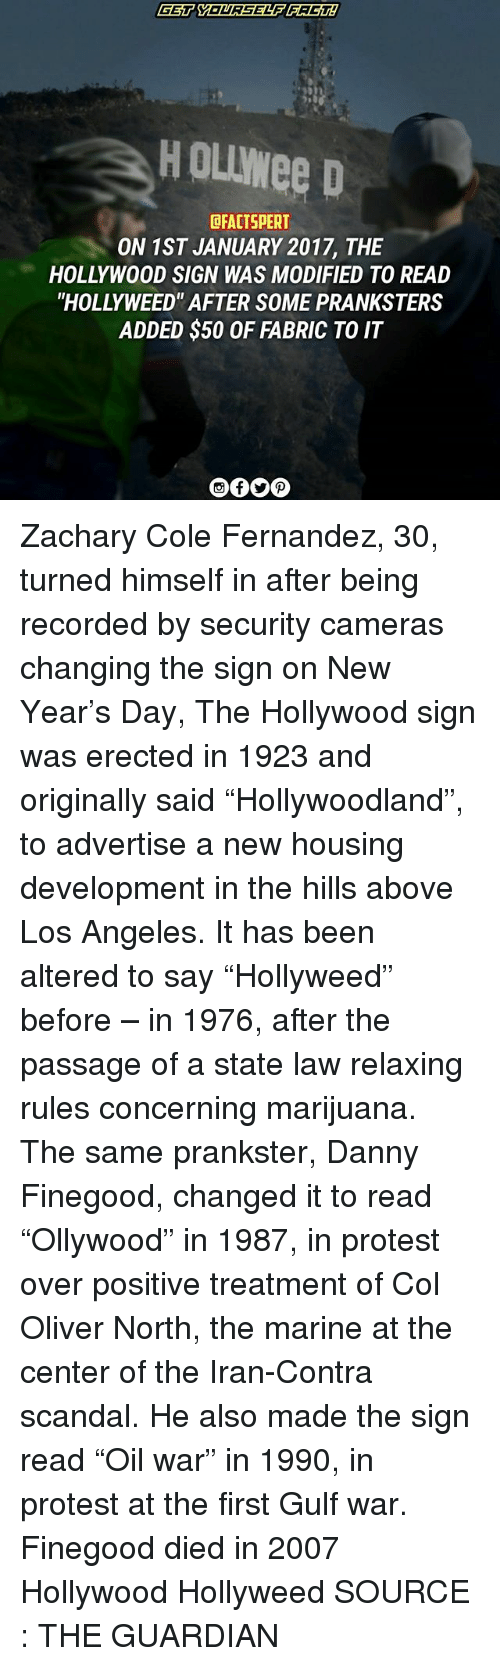 "Memes, New Year's, and Protest: HOUwee D  DFACTSPERT  ON 1ST JANUARY 2017, THE  HOLLYWOOD SIGN WAS MODIFIED TO READ  ""HOLLY WEED' AFTER SOME PRANKSTERS  ADDED $50 OF FABRIC TO IT Zachary Cole Fernandez, 30, turned himself in after being recorded by security cameras changing the sign on New Year's Day, The Hollywood sign was erected in 1923 and originally said ""Hollywoodland"", to advertise a new housing development in the hills above Los Angeles. It has been altered to say ""Hollyweed"" before – in 1976, after the passage of a state law relaxing rules concerning marijuana. The same prankster, Danny Finegood, changed it to read ""Ollywood"" in 1987, in protest over positive treatment of Col Oliver North, the marine at the center of the Iran-Contra scandal. He also made the sign read ""Oil war"" in 1990, in protest at the first Gulf war. Finegood died in 2007 Hollywood Hollyweed SOURCE : THE GUARDIAN"